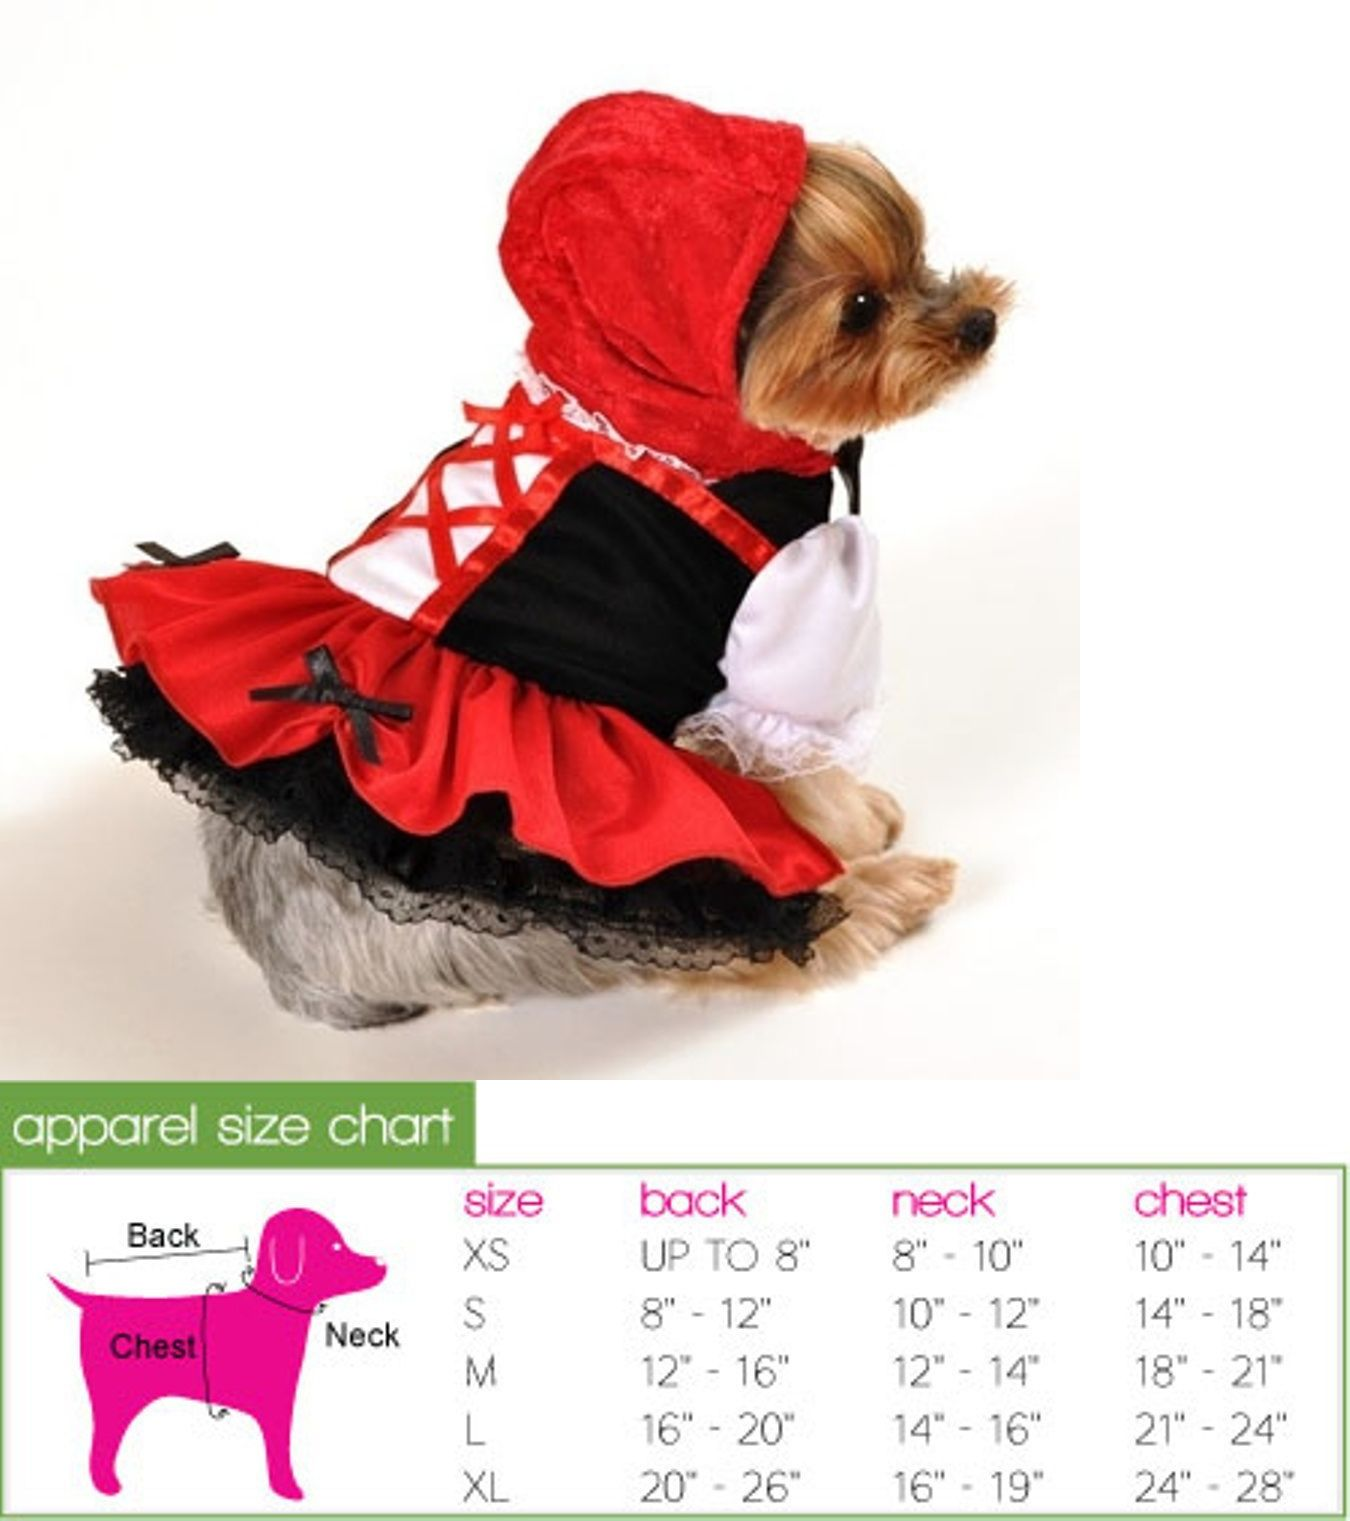 Costumes 52352: Red Hood Dress Costume By Anit Accessories ~ Size Large -> BUY IT NOW ONLY: $40.99 on eBay!